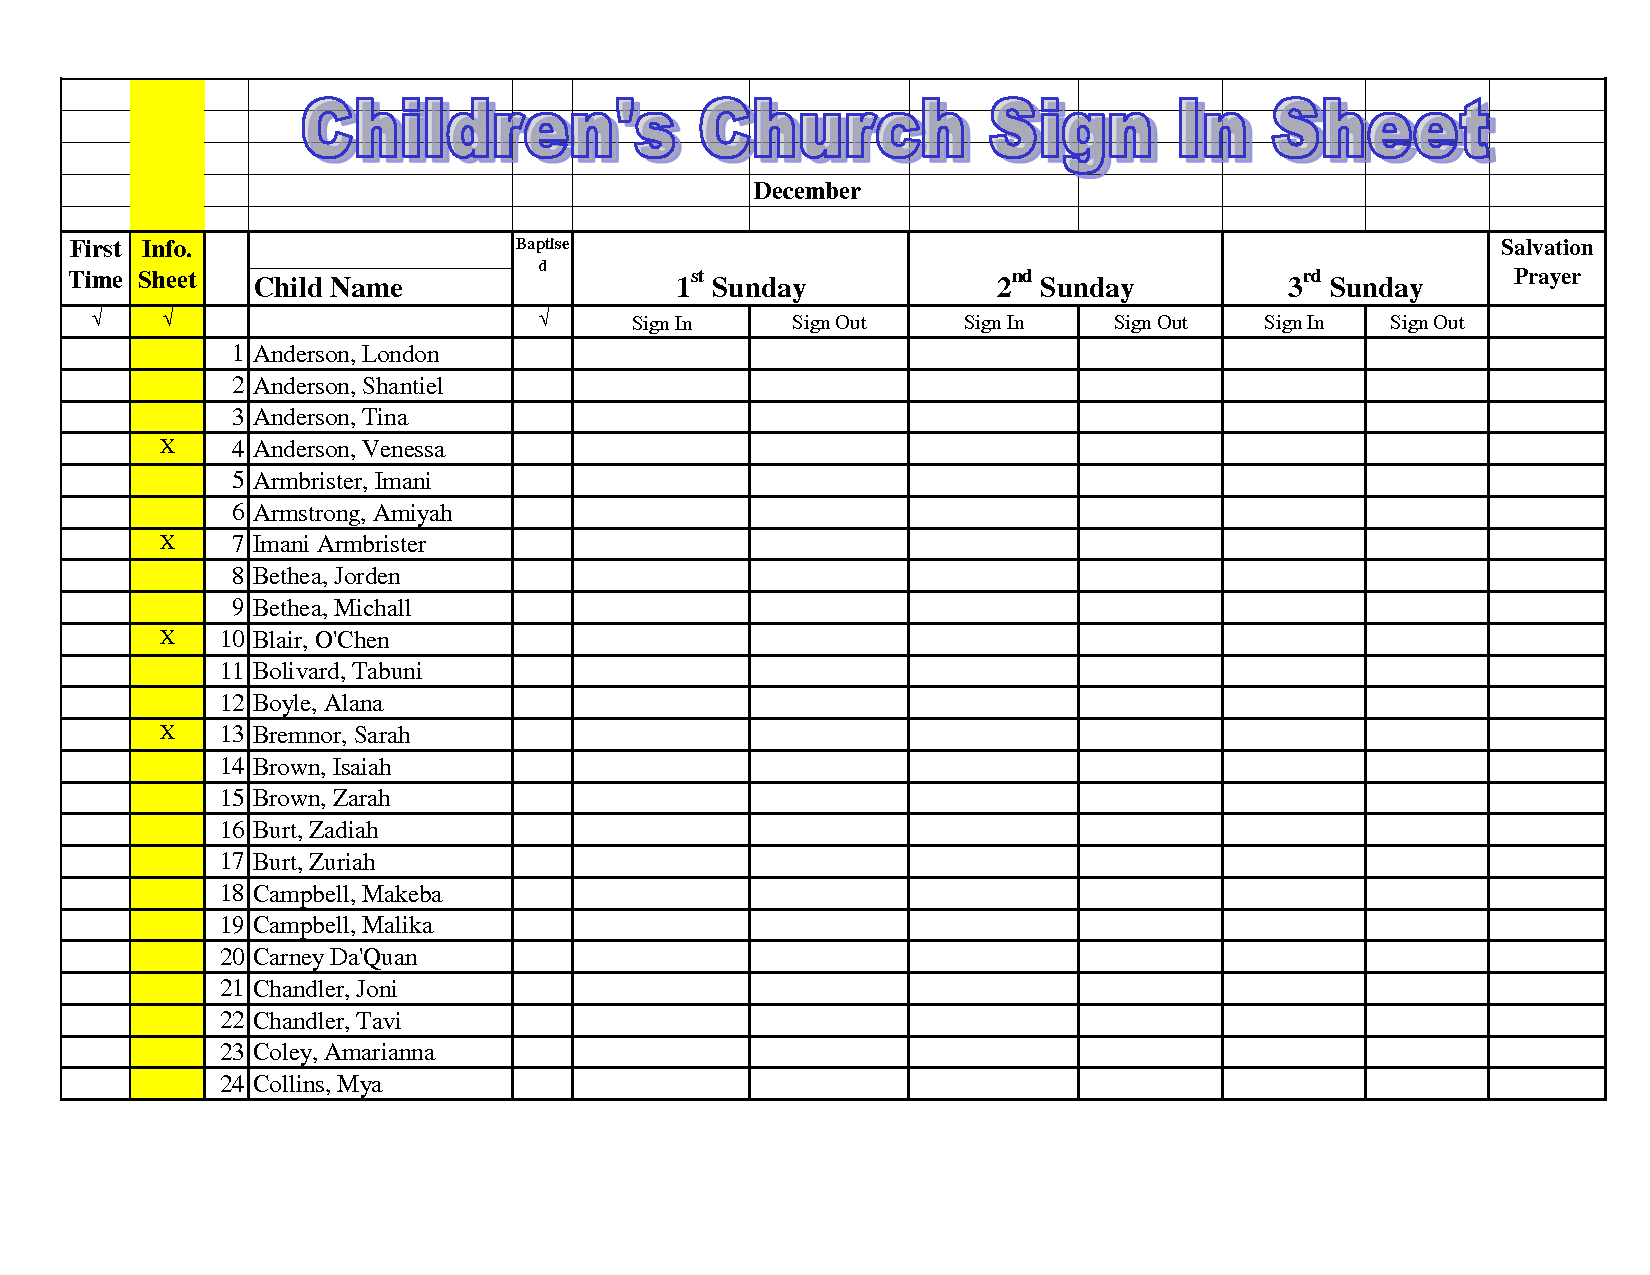 Children's Church Sign In Sheet Template  Google Search regarding Printable Children's Church Sign In Sheet Template